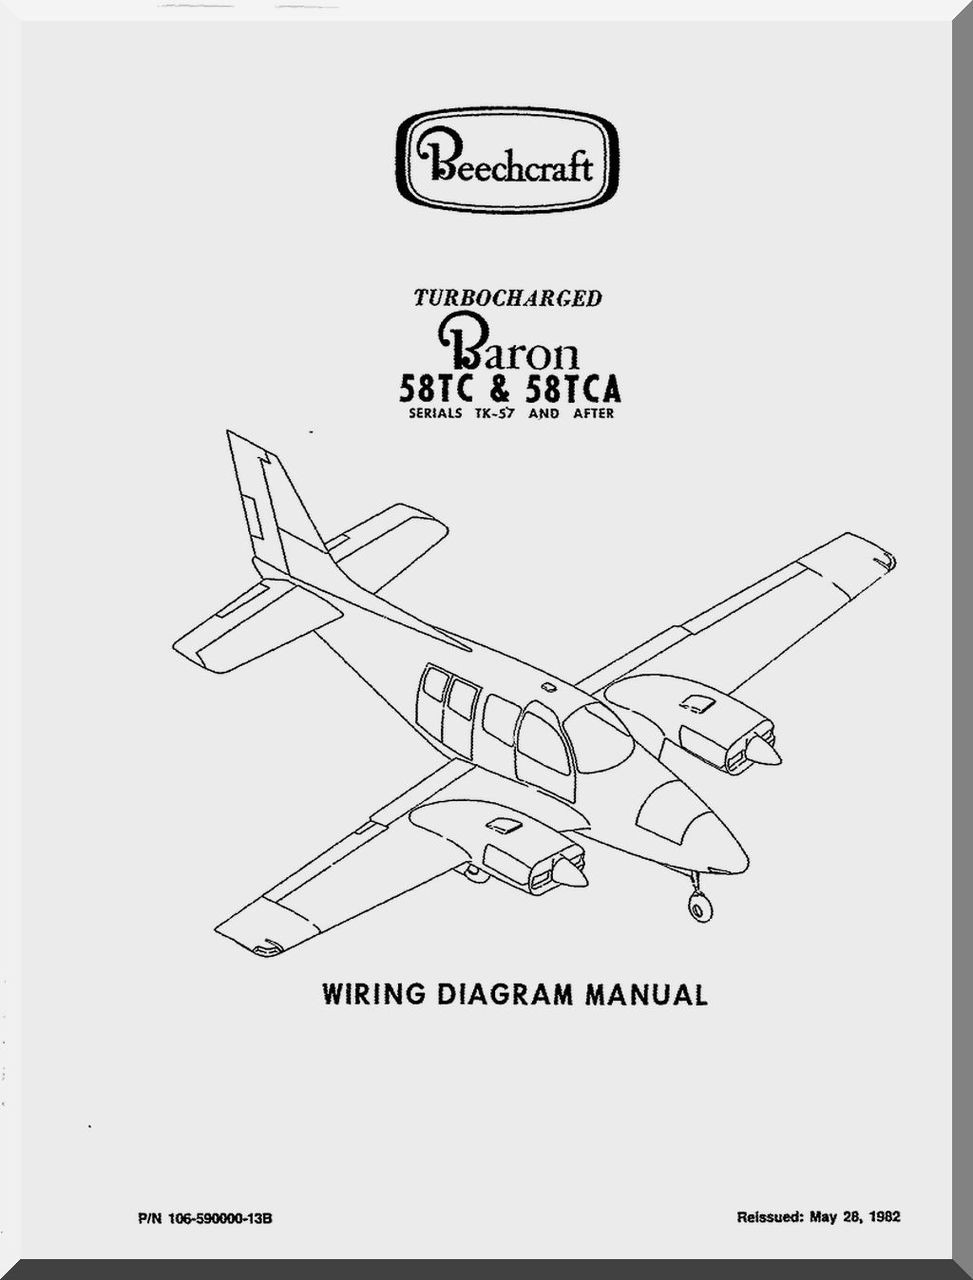 Tca Wiring Diagram Title Author S Citation Issue Date Doc Url Type 1981 Jeep Cj7 Image 1